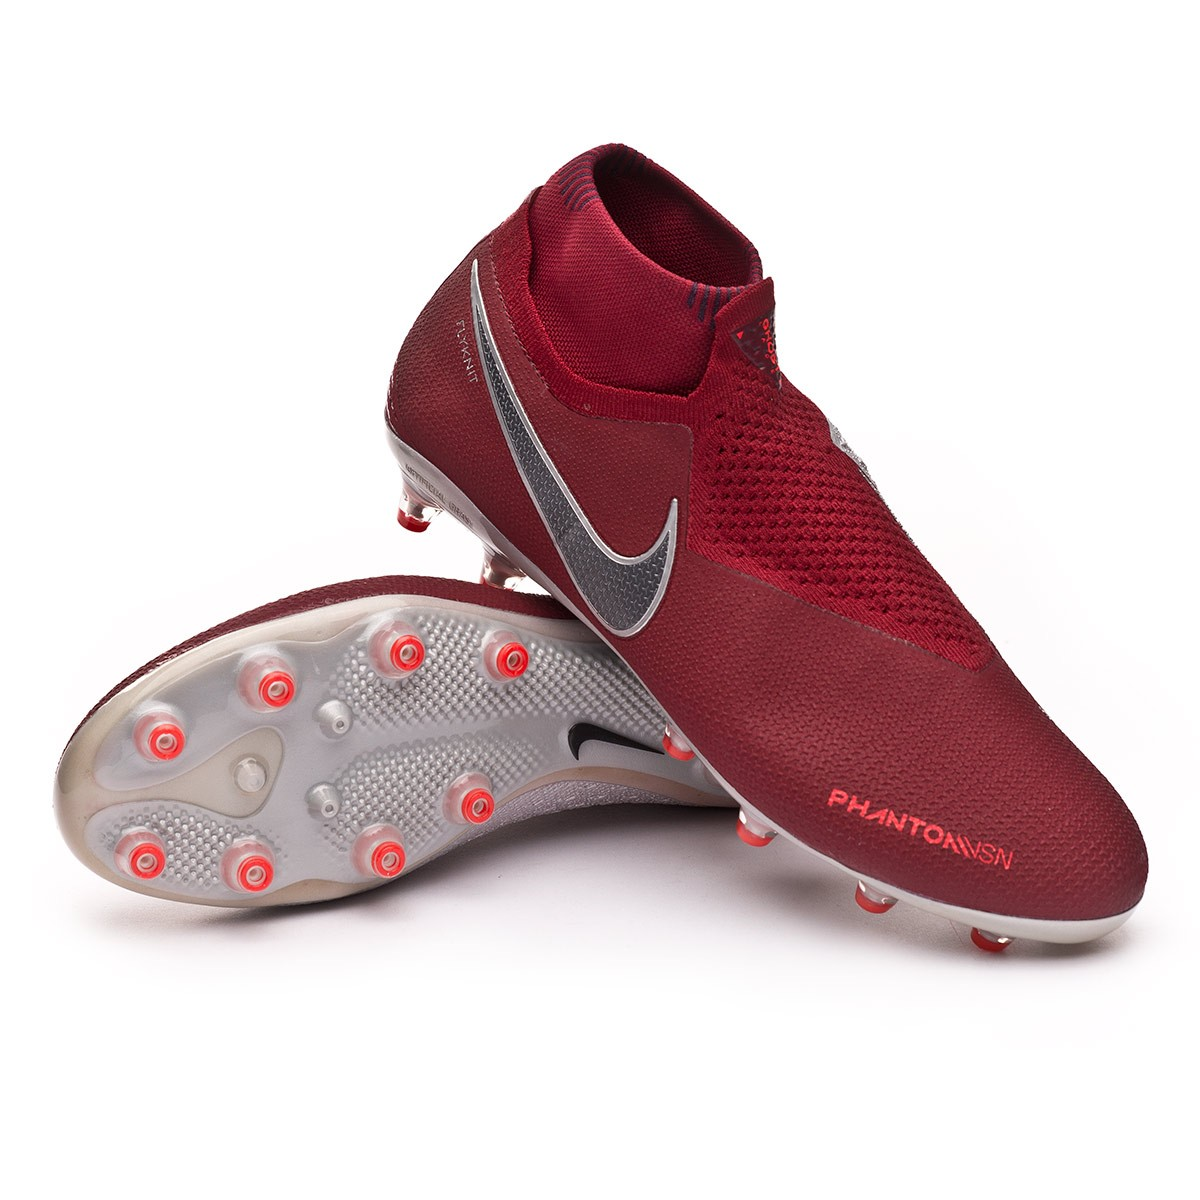 6ad9e80fd Nike Phantom Vision Elite DF AG-Pro Football Boots. Team red-Metallic dark  ...